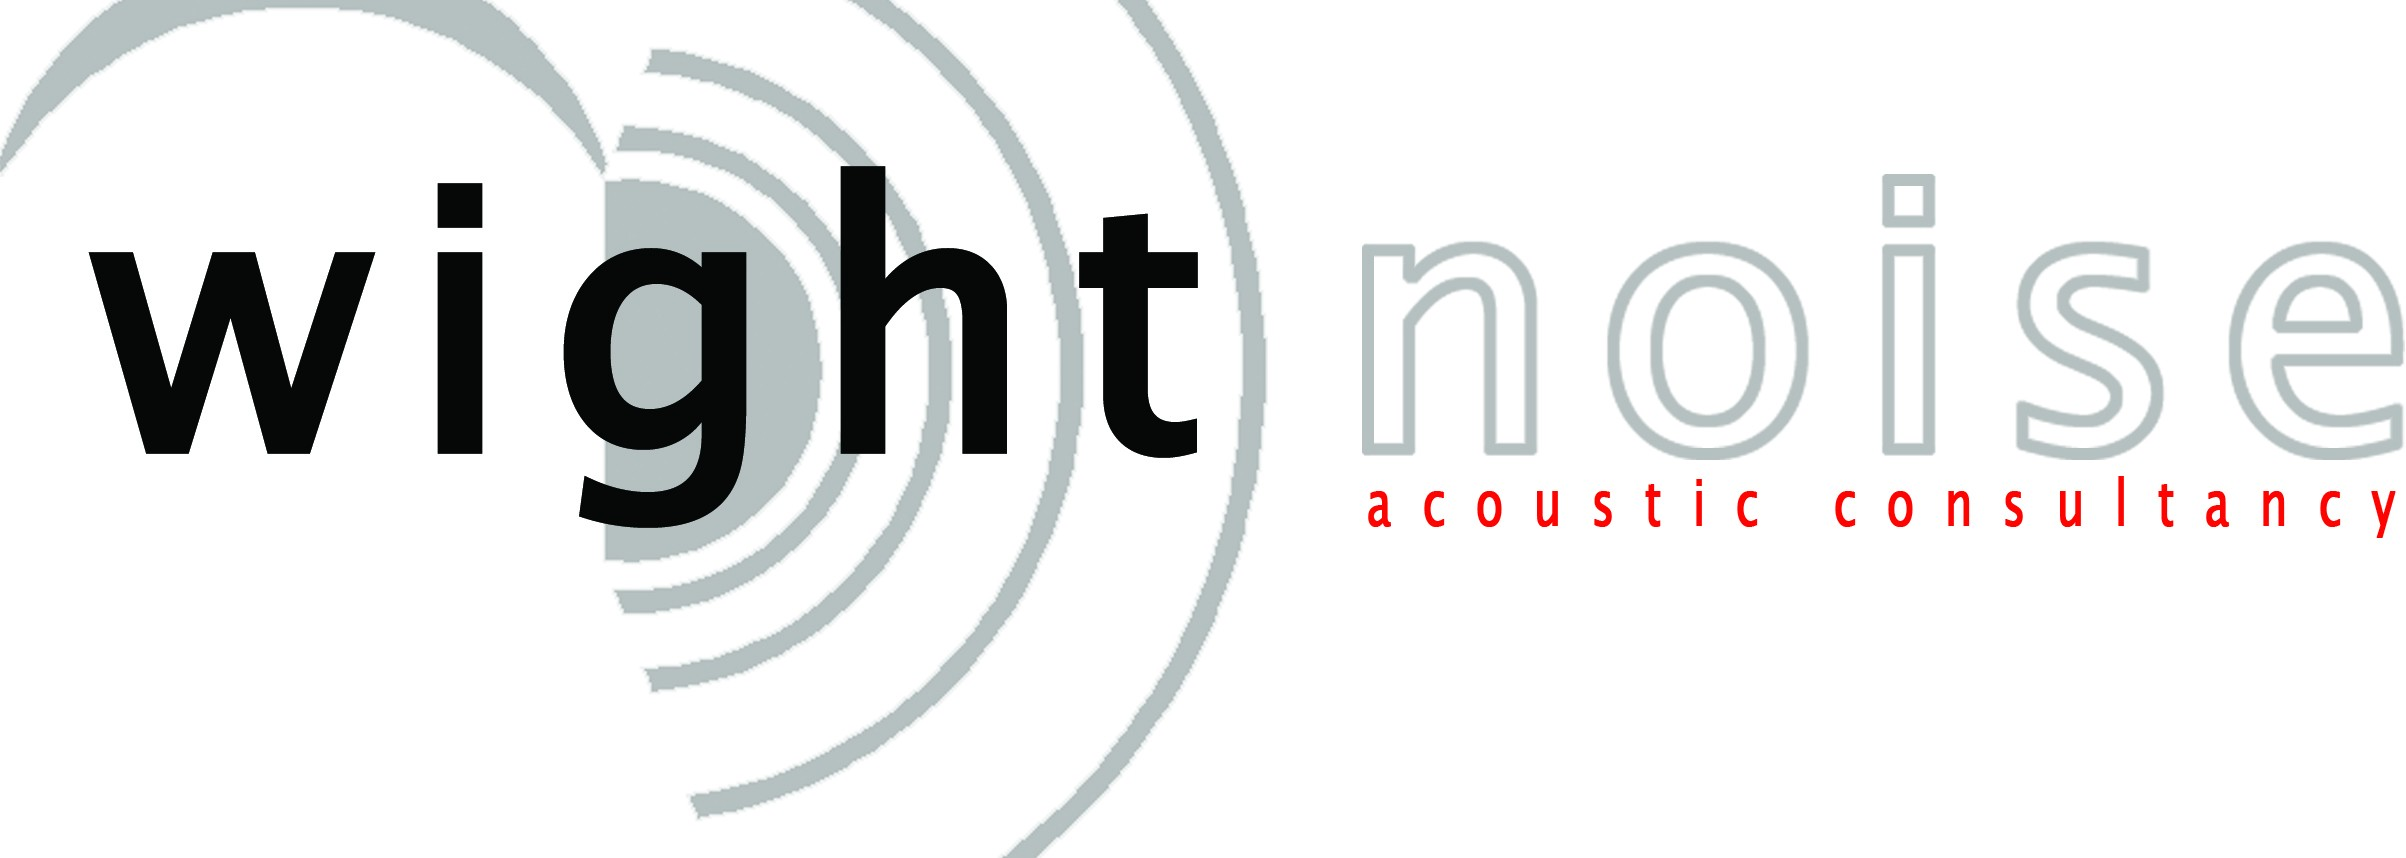 wight noise logo.jpg